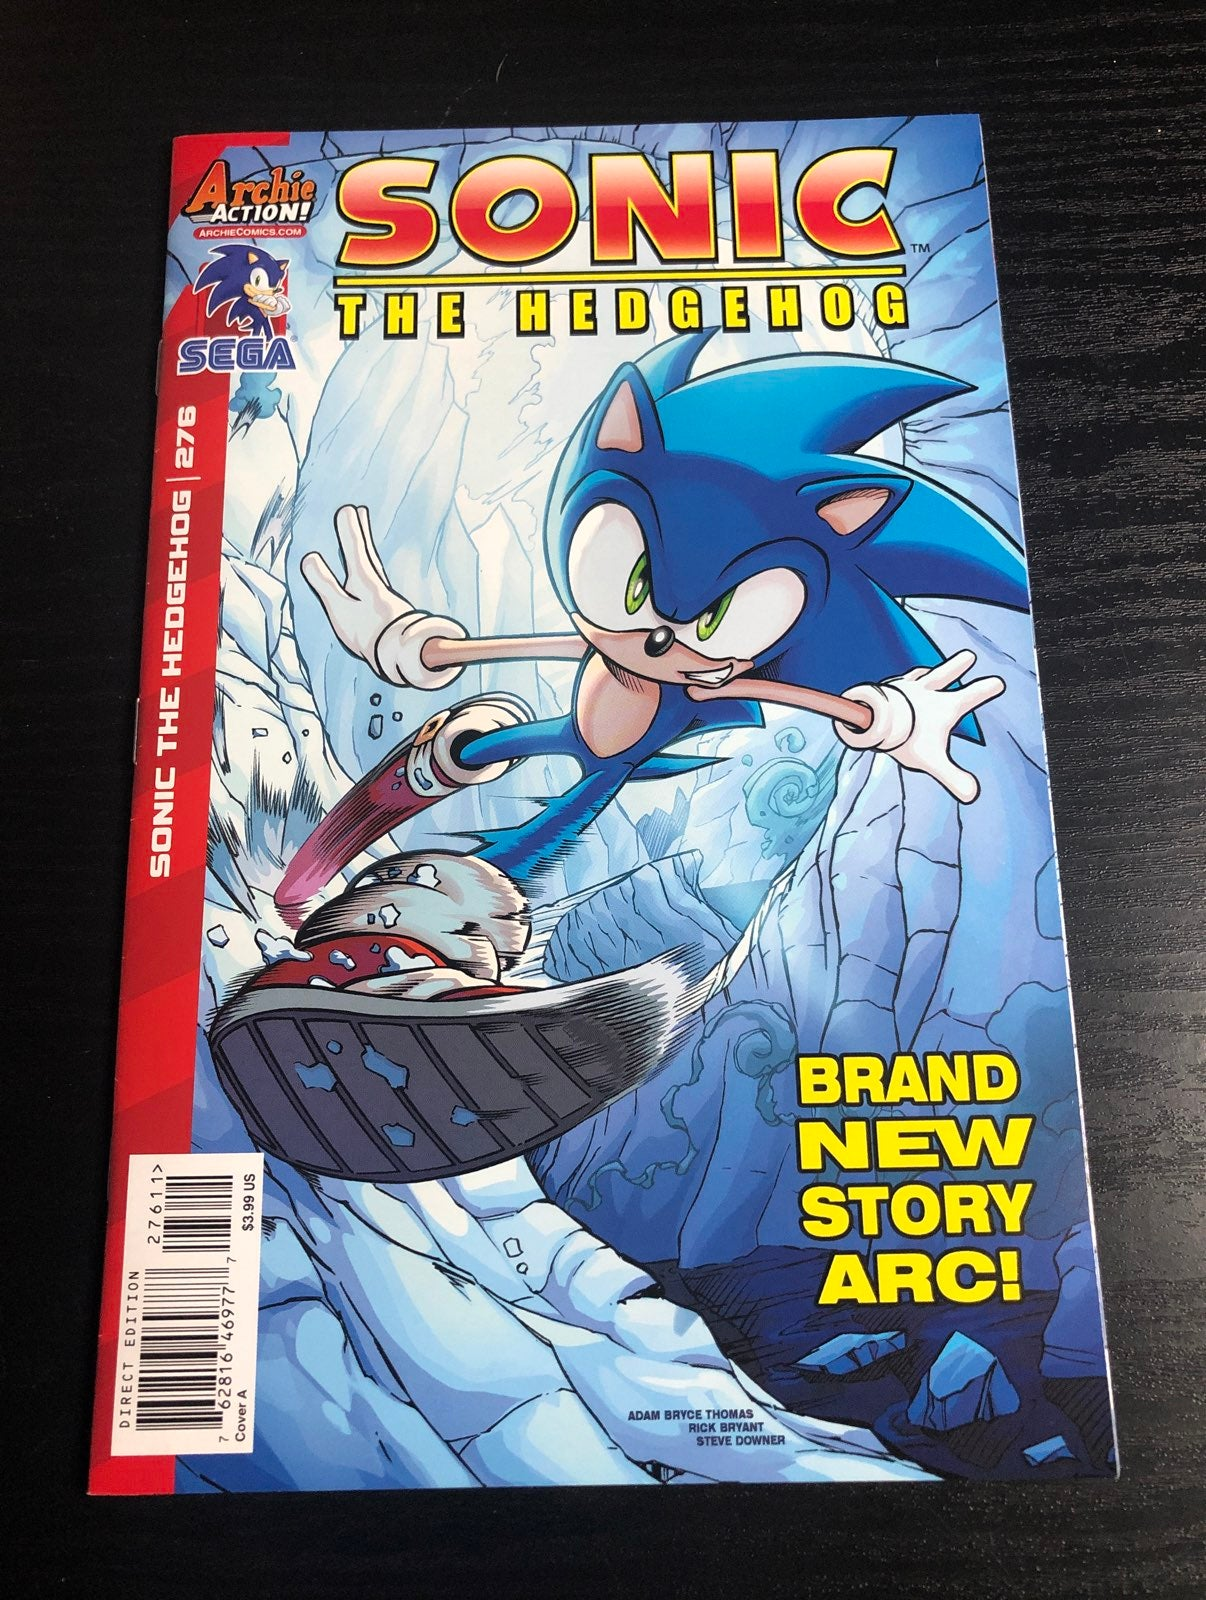 Sonic the Hedgehog comic issue 276